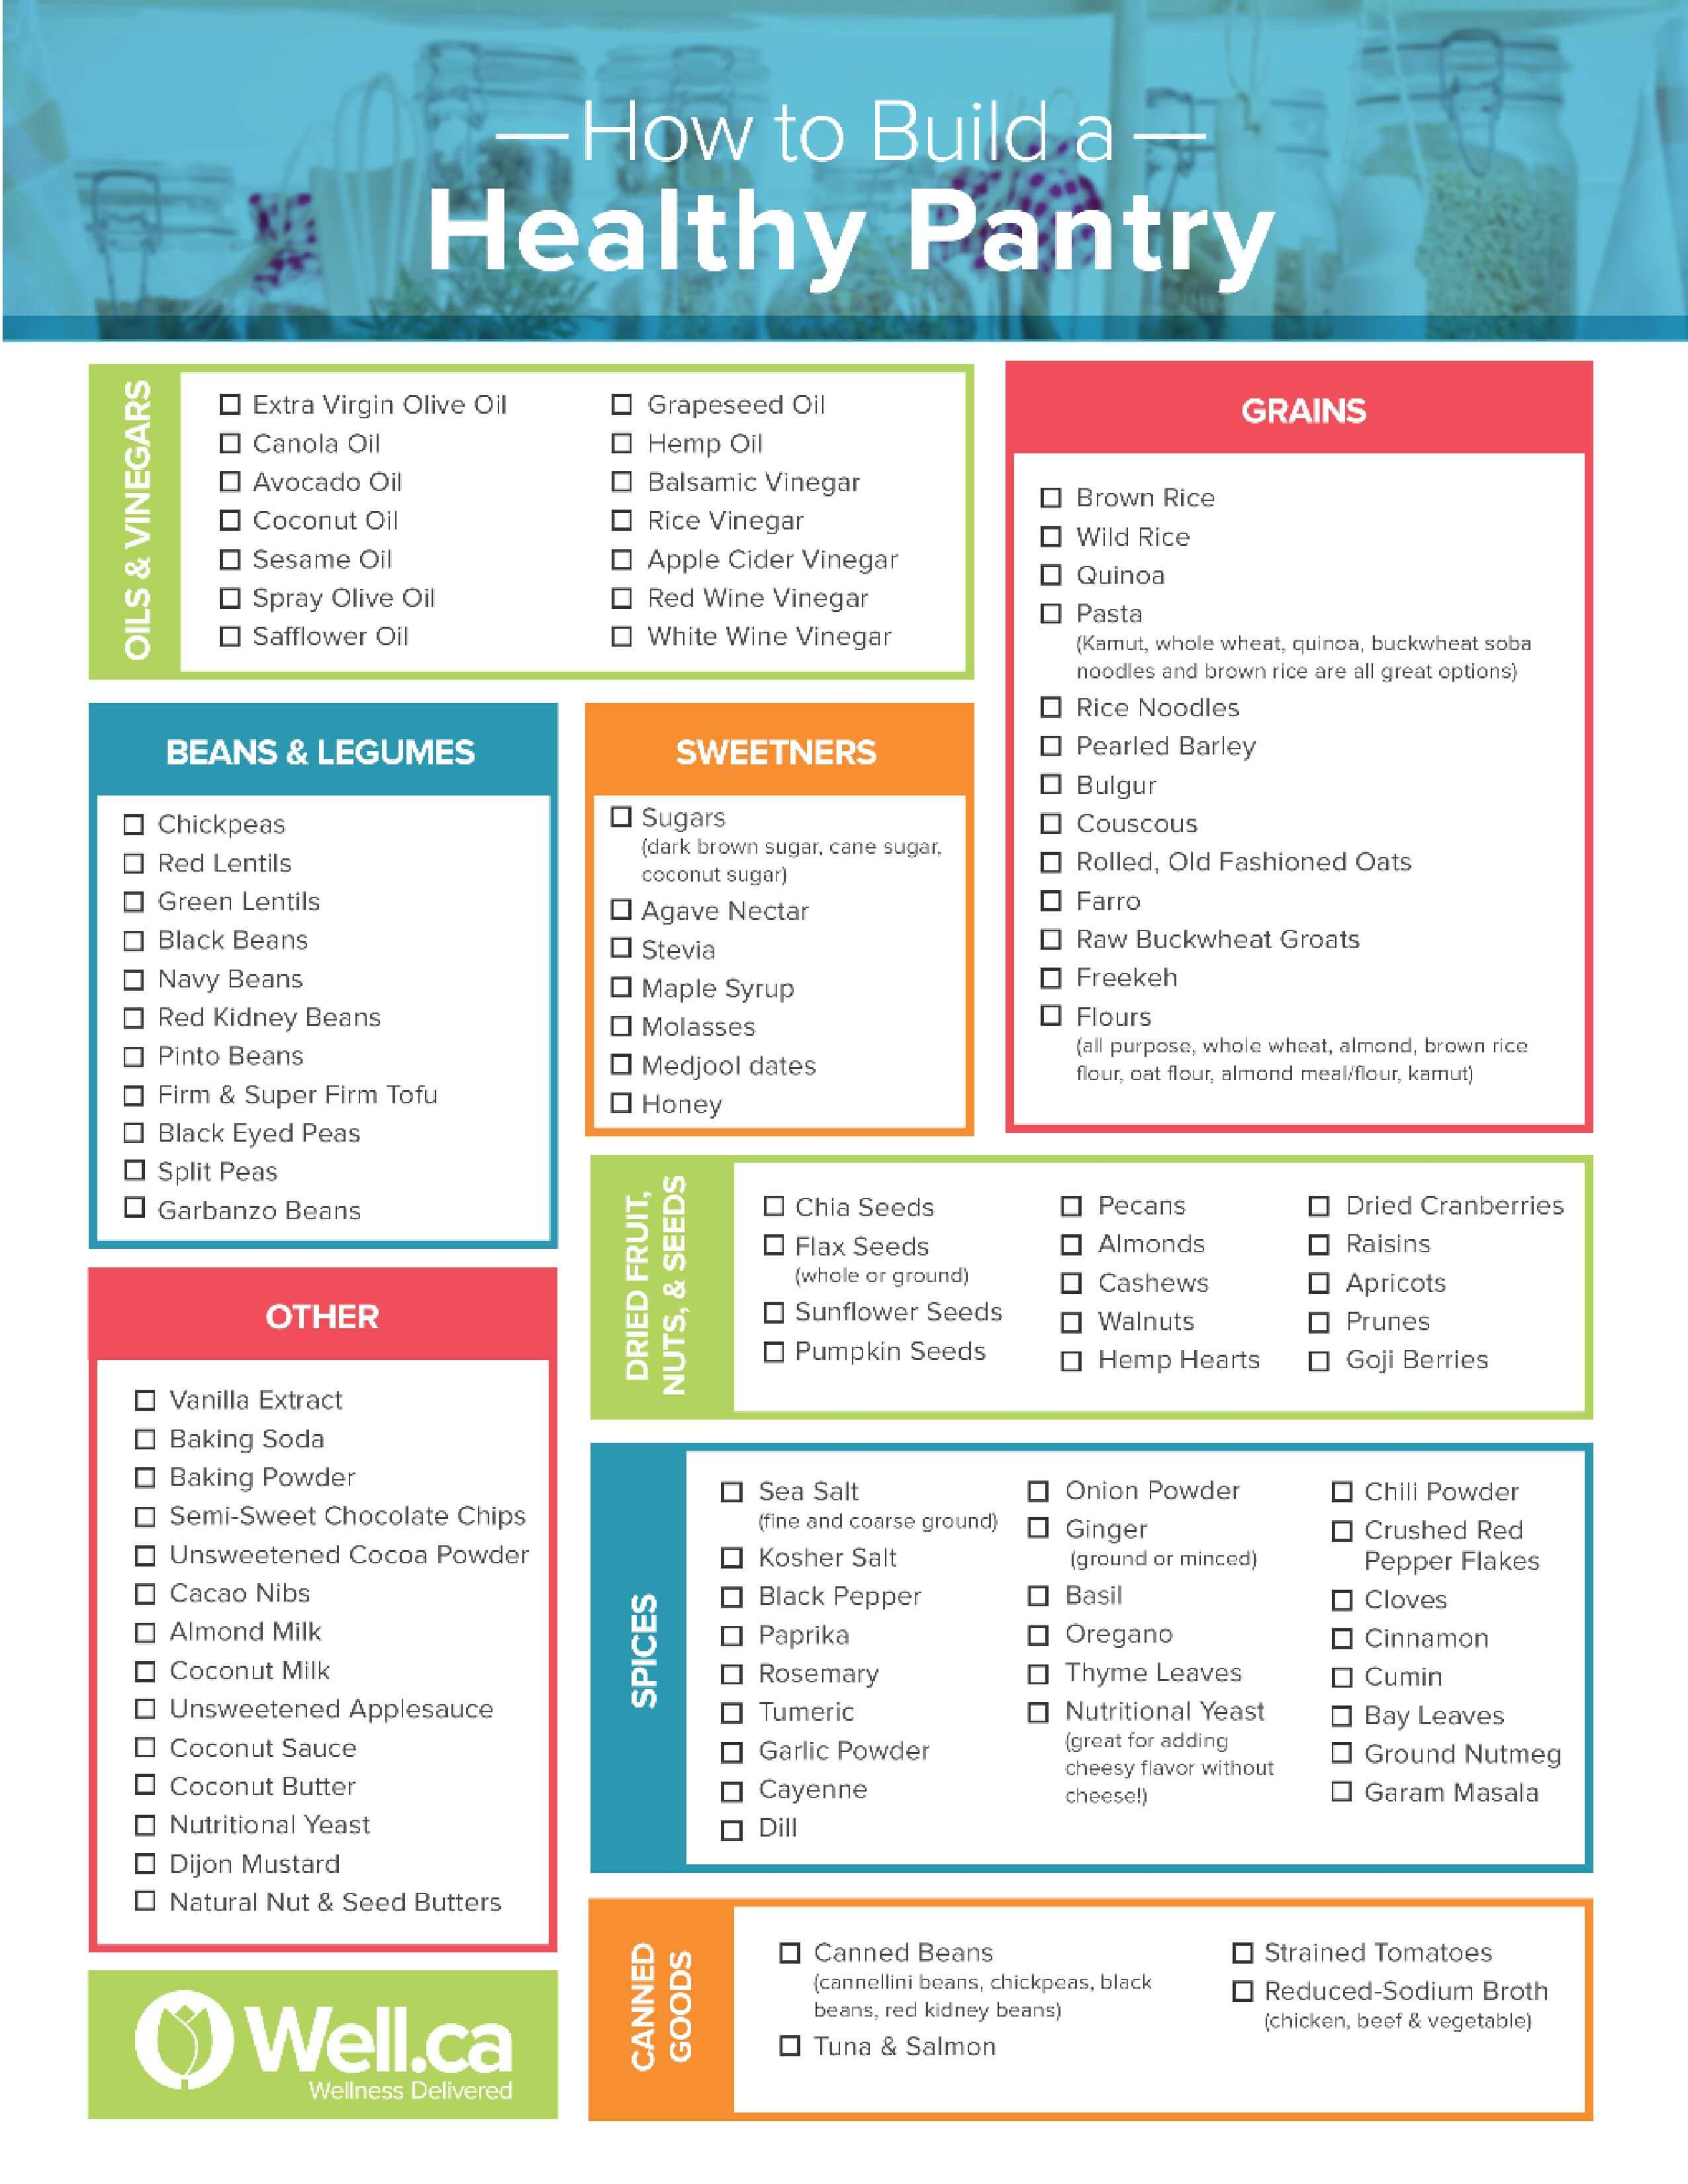 Checklist for How to Build a Healthy Pantry